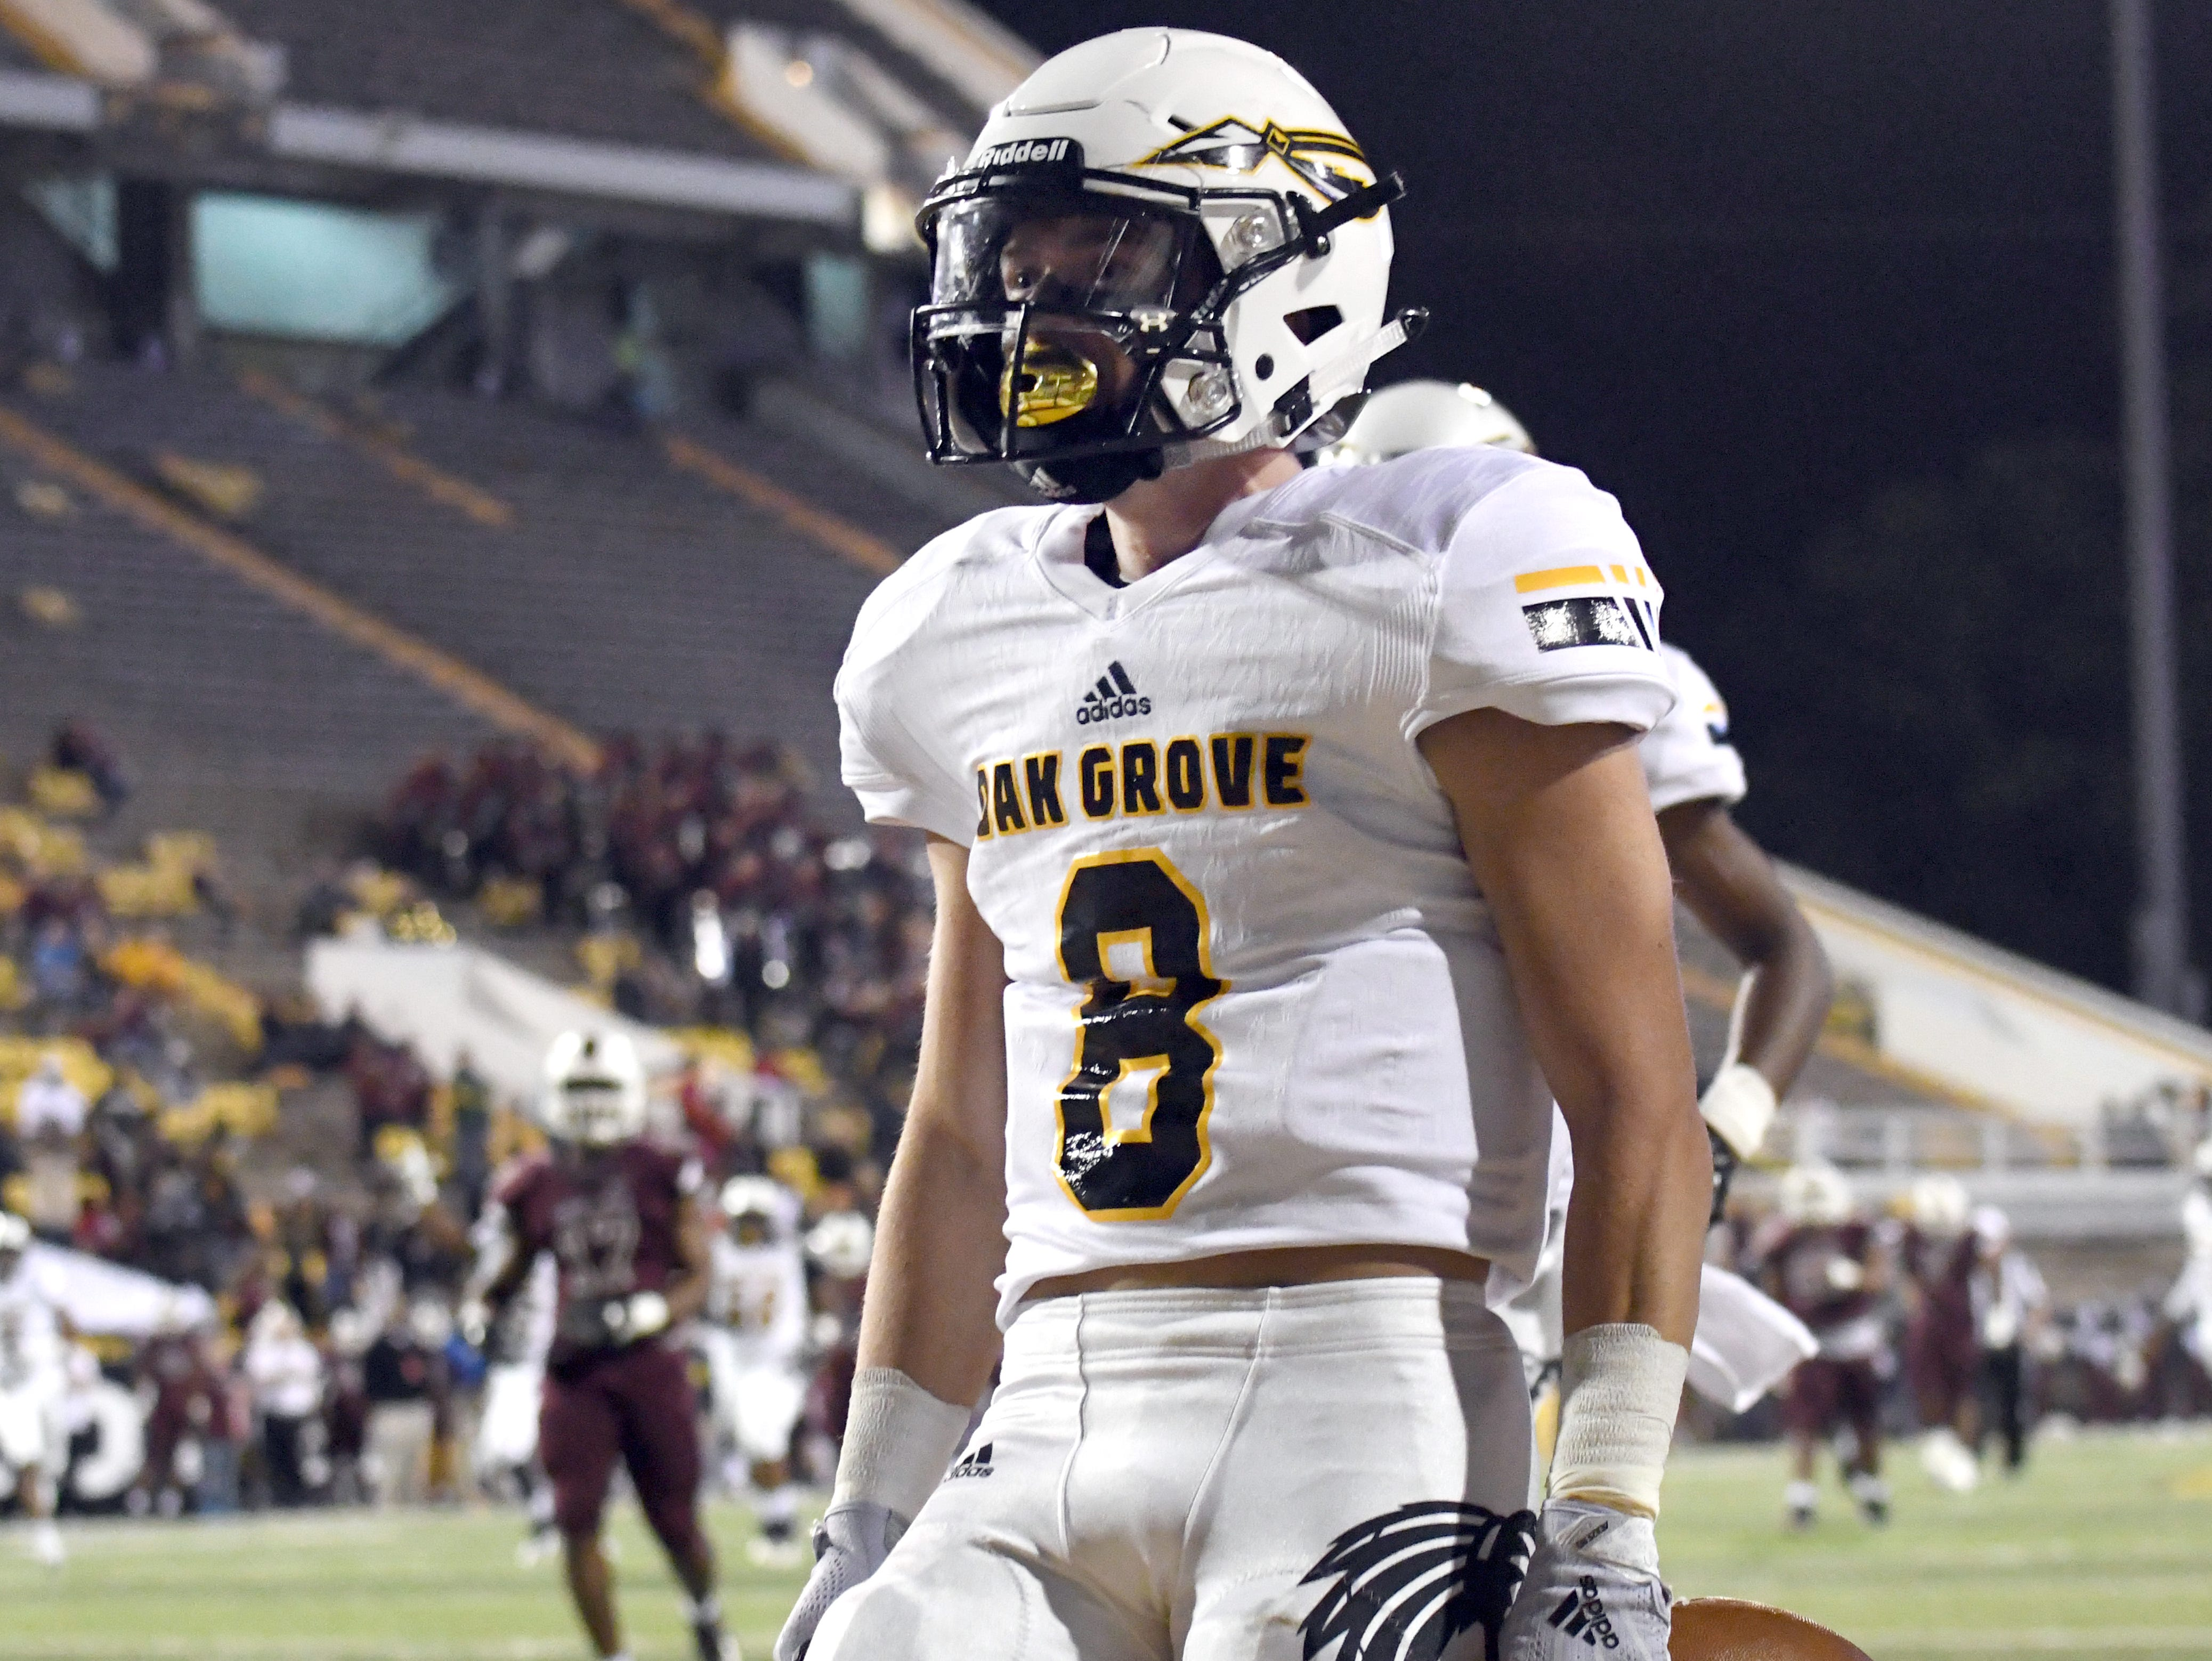 Oak Grove wide receiver Liam Breithaupt celebrates after scoring a touchdown in the 6A state championship game against Horn Lake at M.M. Roberts Stadium in Hattiesburg on Friday, November 30, 2018.